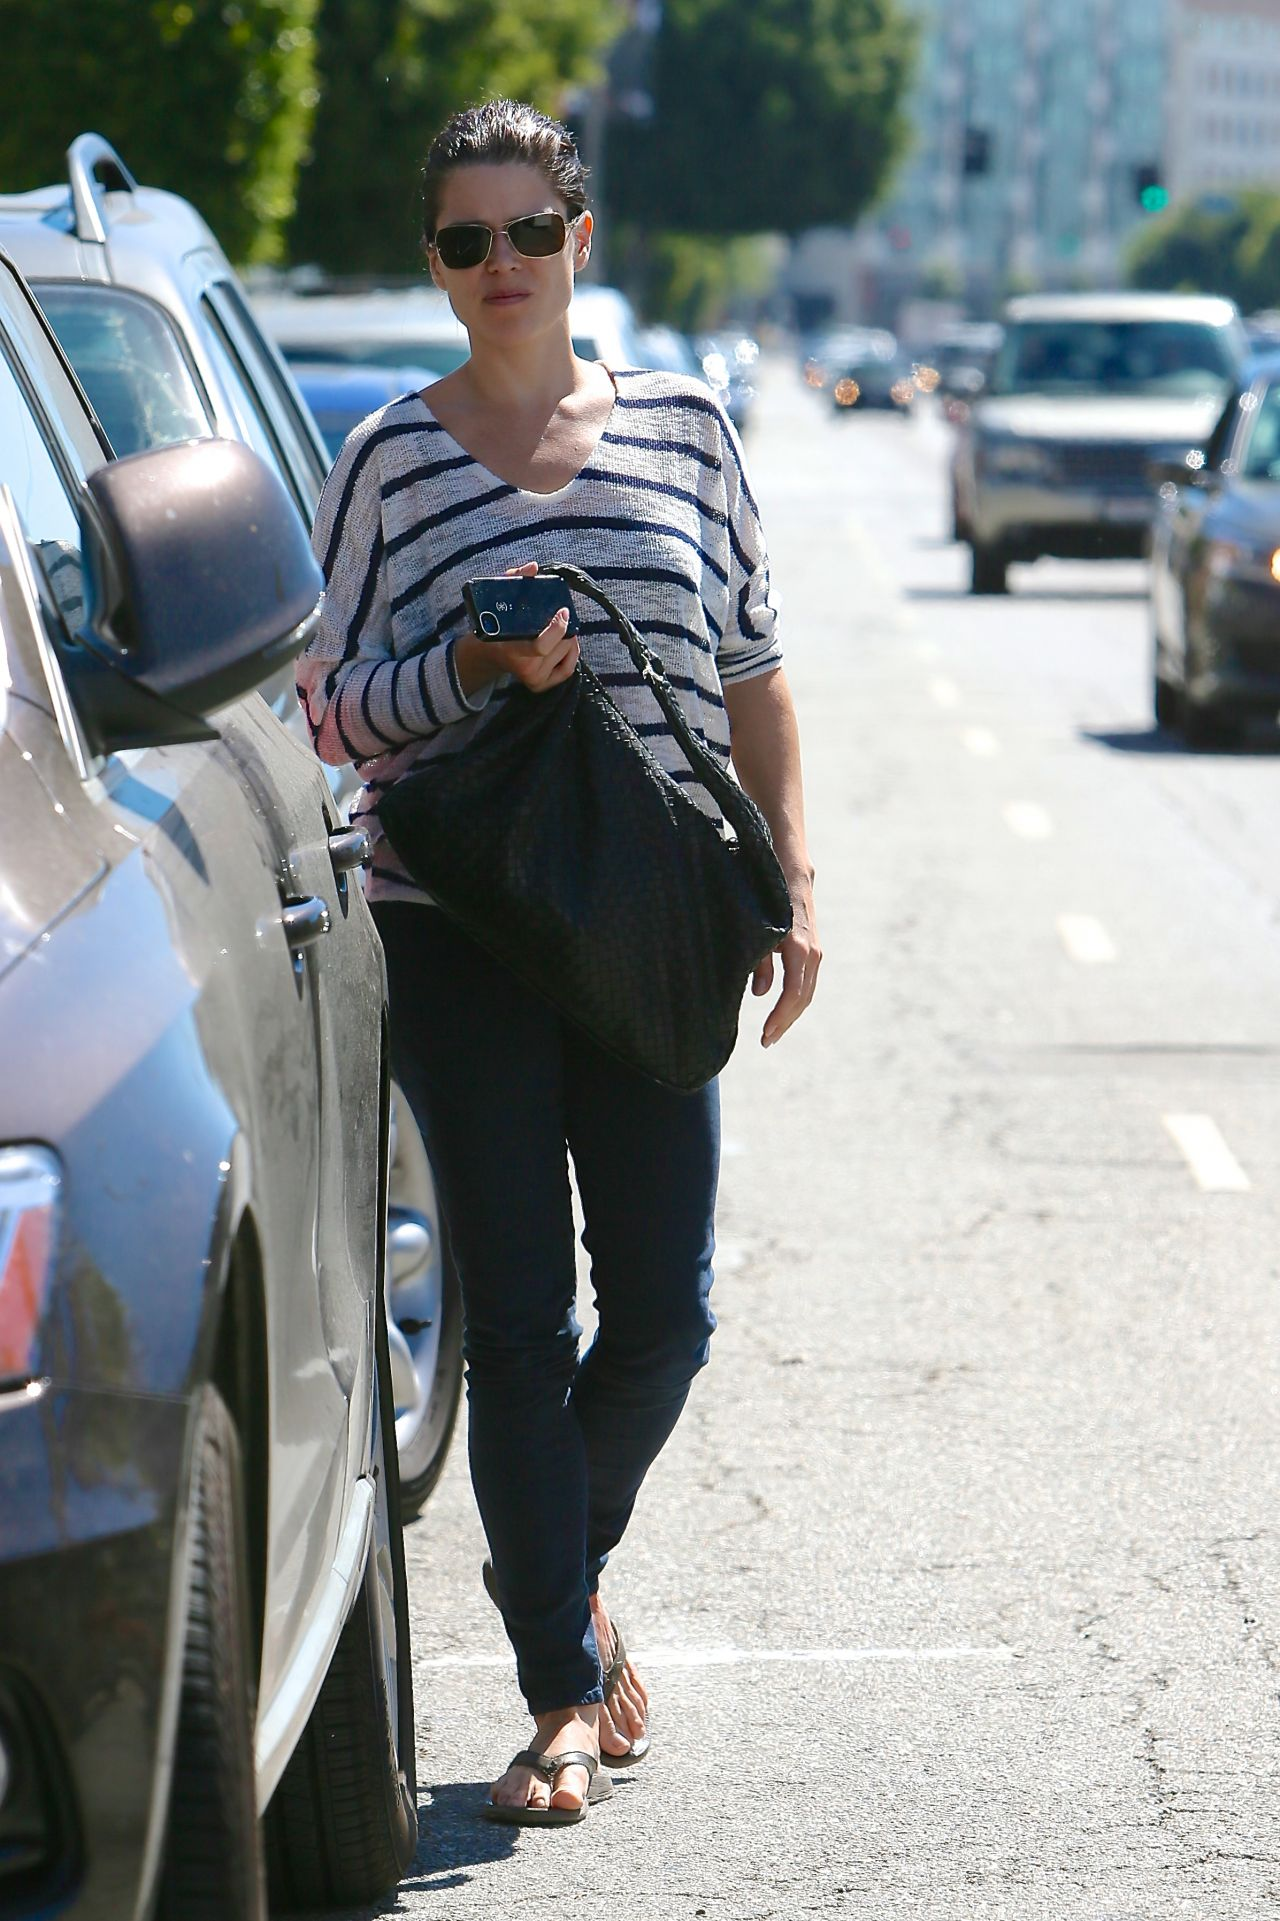 Neve Campbell Street Style - Leaving the Twist Cafe in Los Angeles - Sept. 2014